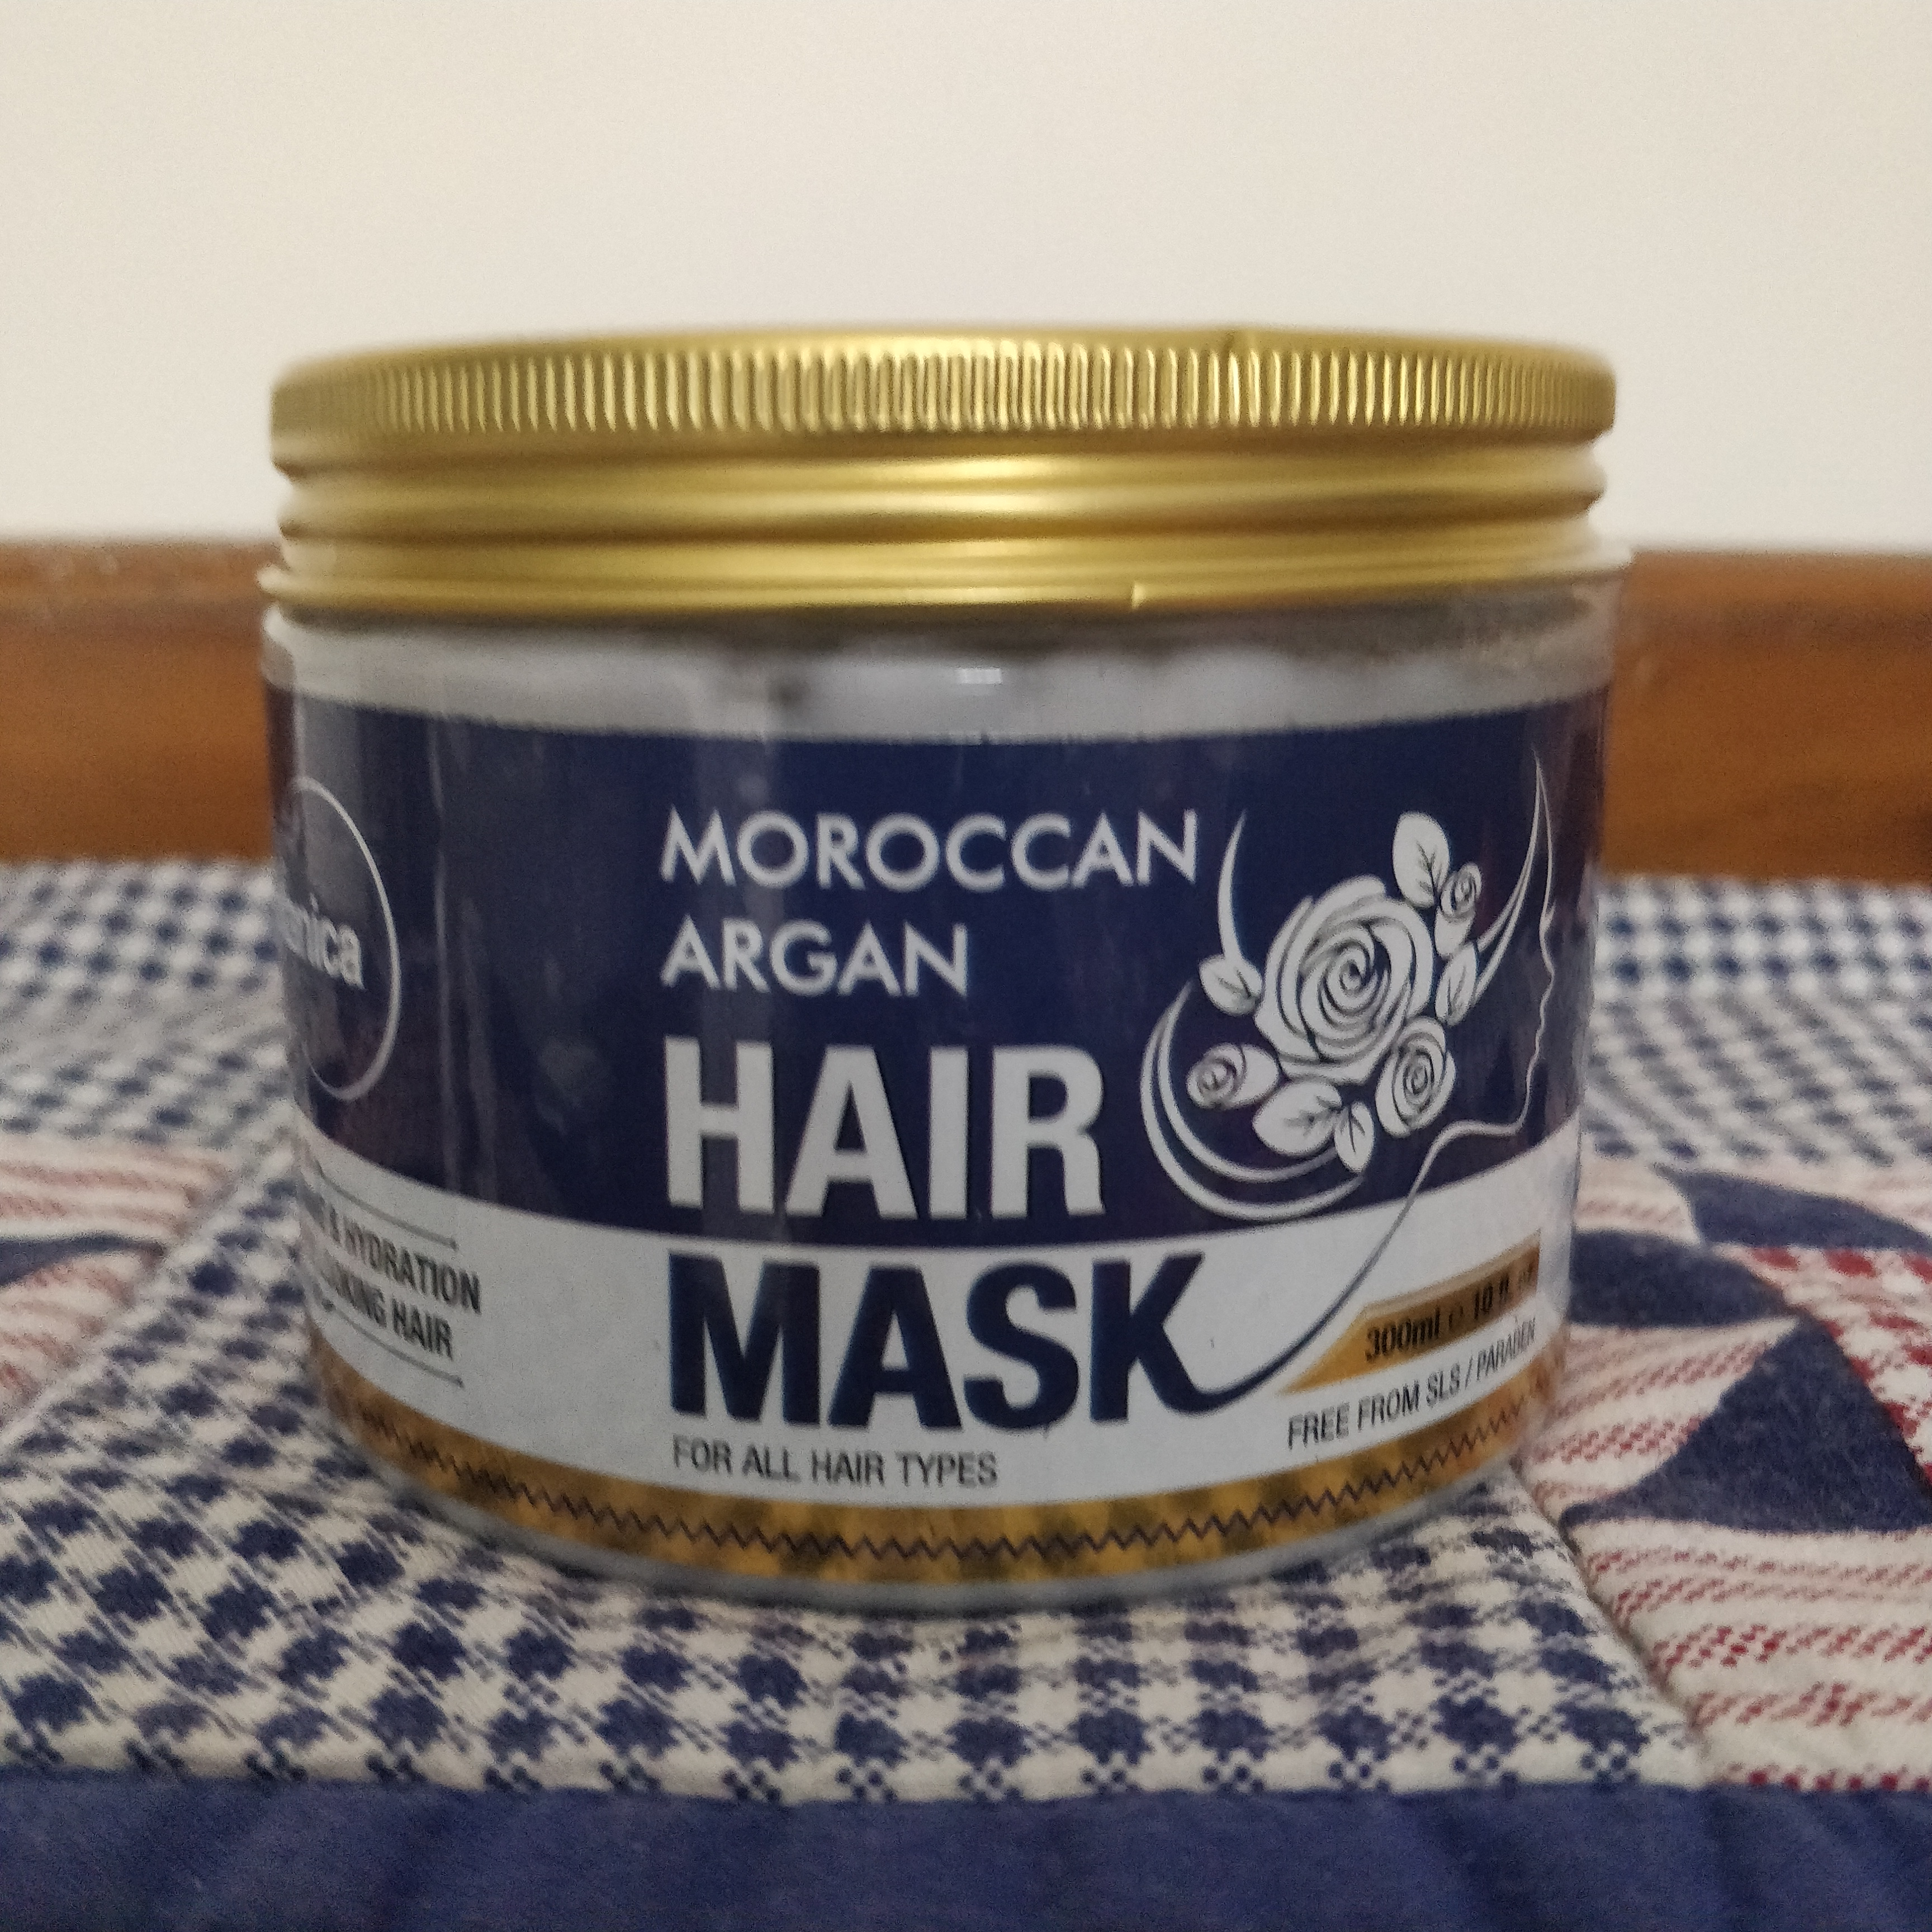 St.Botanica Moroccan Argan Hair Mask-Great for chemical treated hair-By mjolly